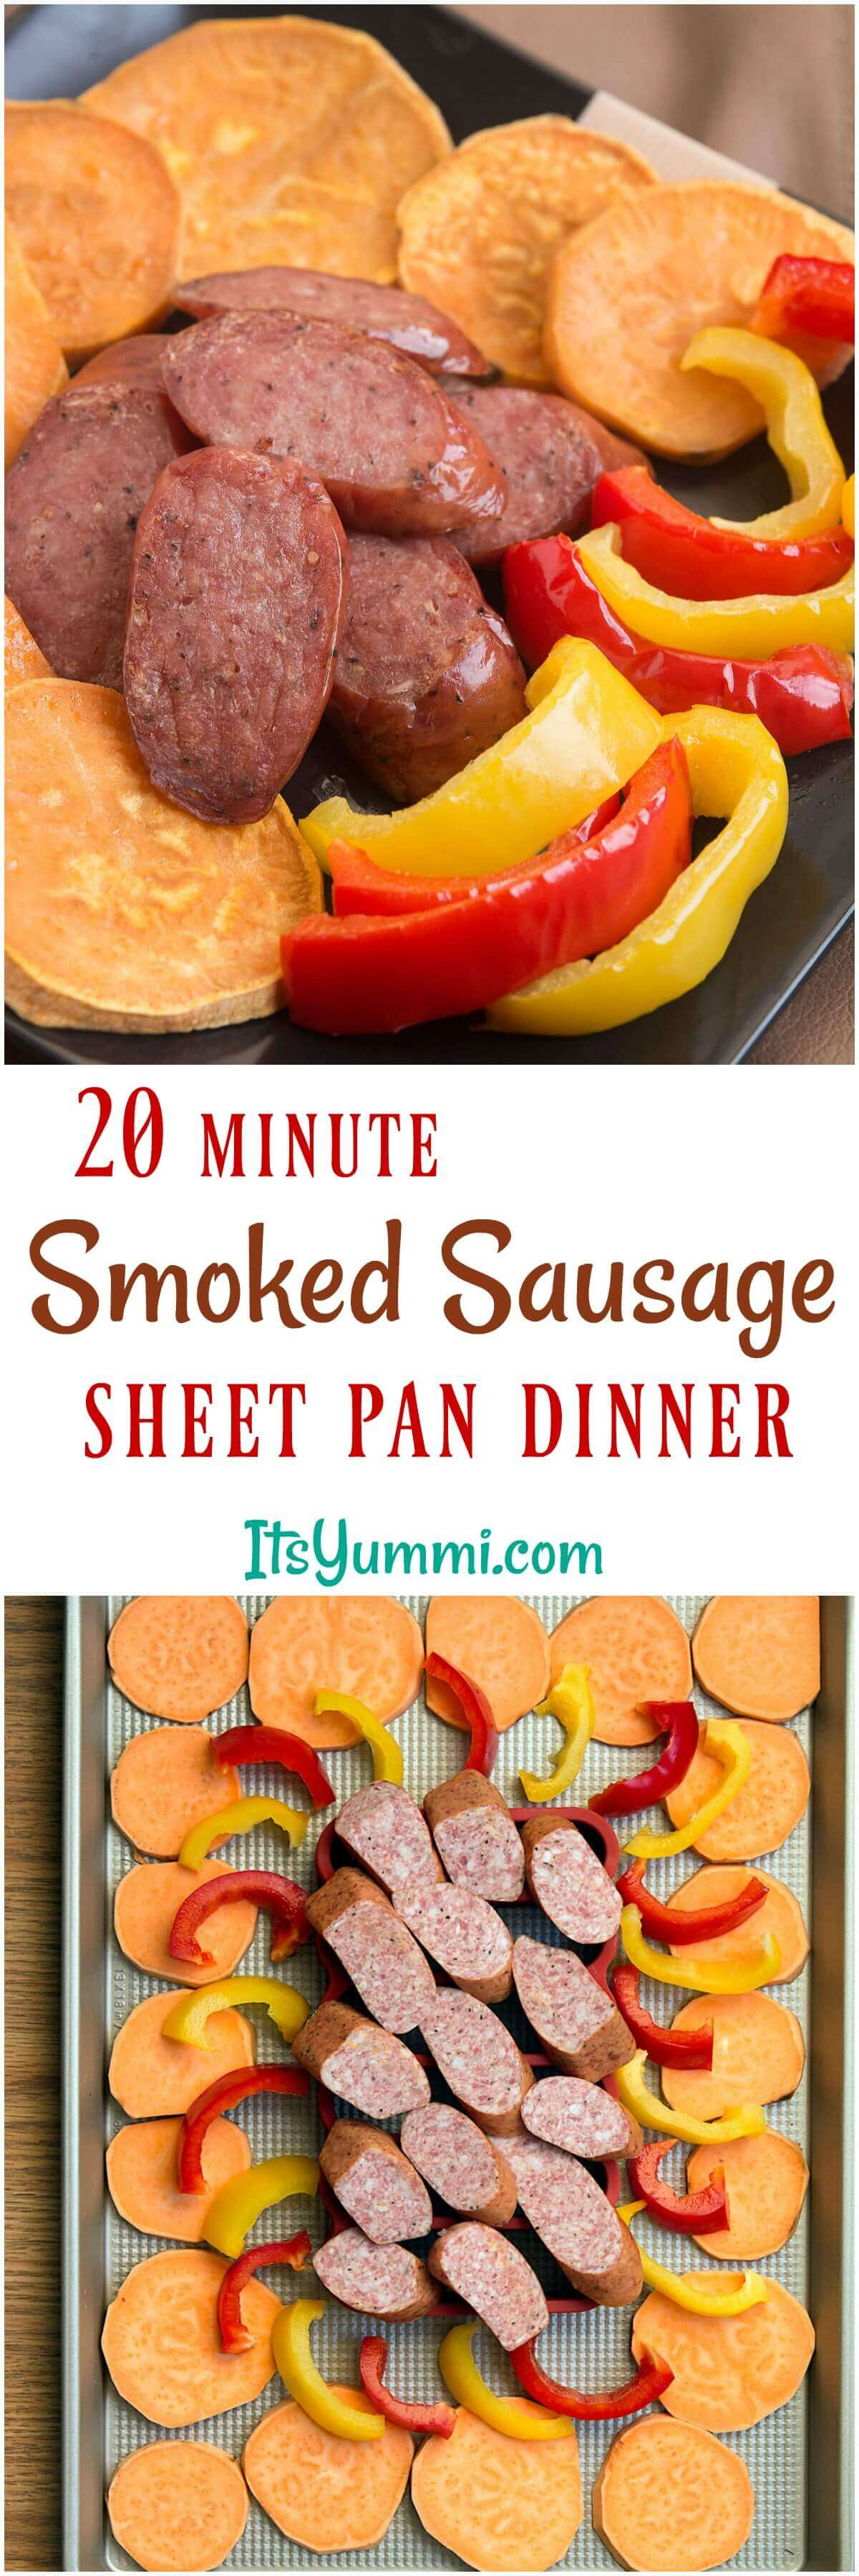 This easy sausage sheet pan dinner is a delicious and quick weeknight meal! Smoked sausage, sweet potatoes, and bell peppers are lightly seasoned, then roasted for 20 minutes in this one pan dinner recipe. #onepan #sheetpan #dinner #recipe